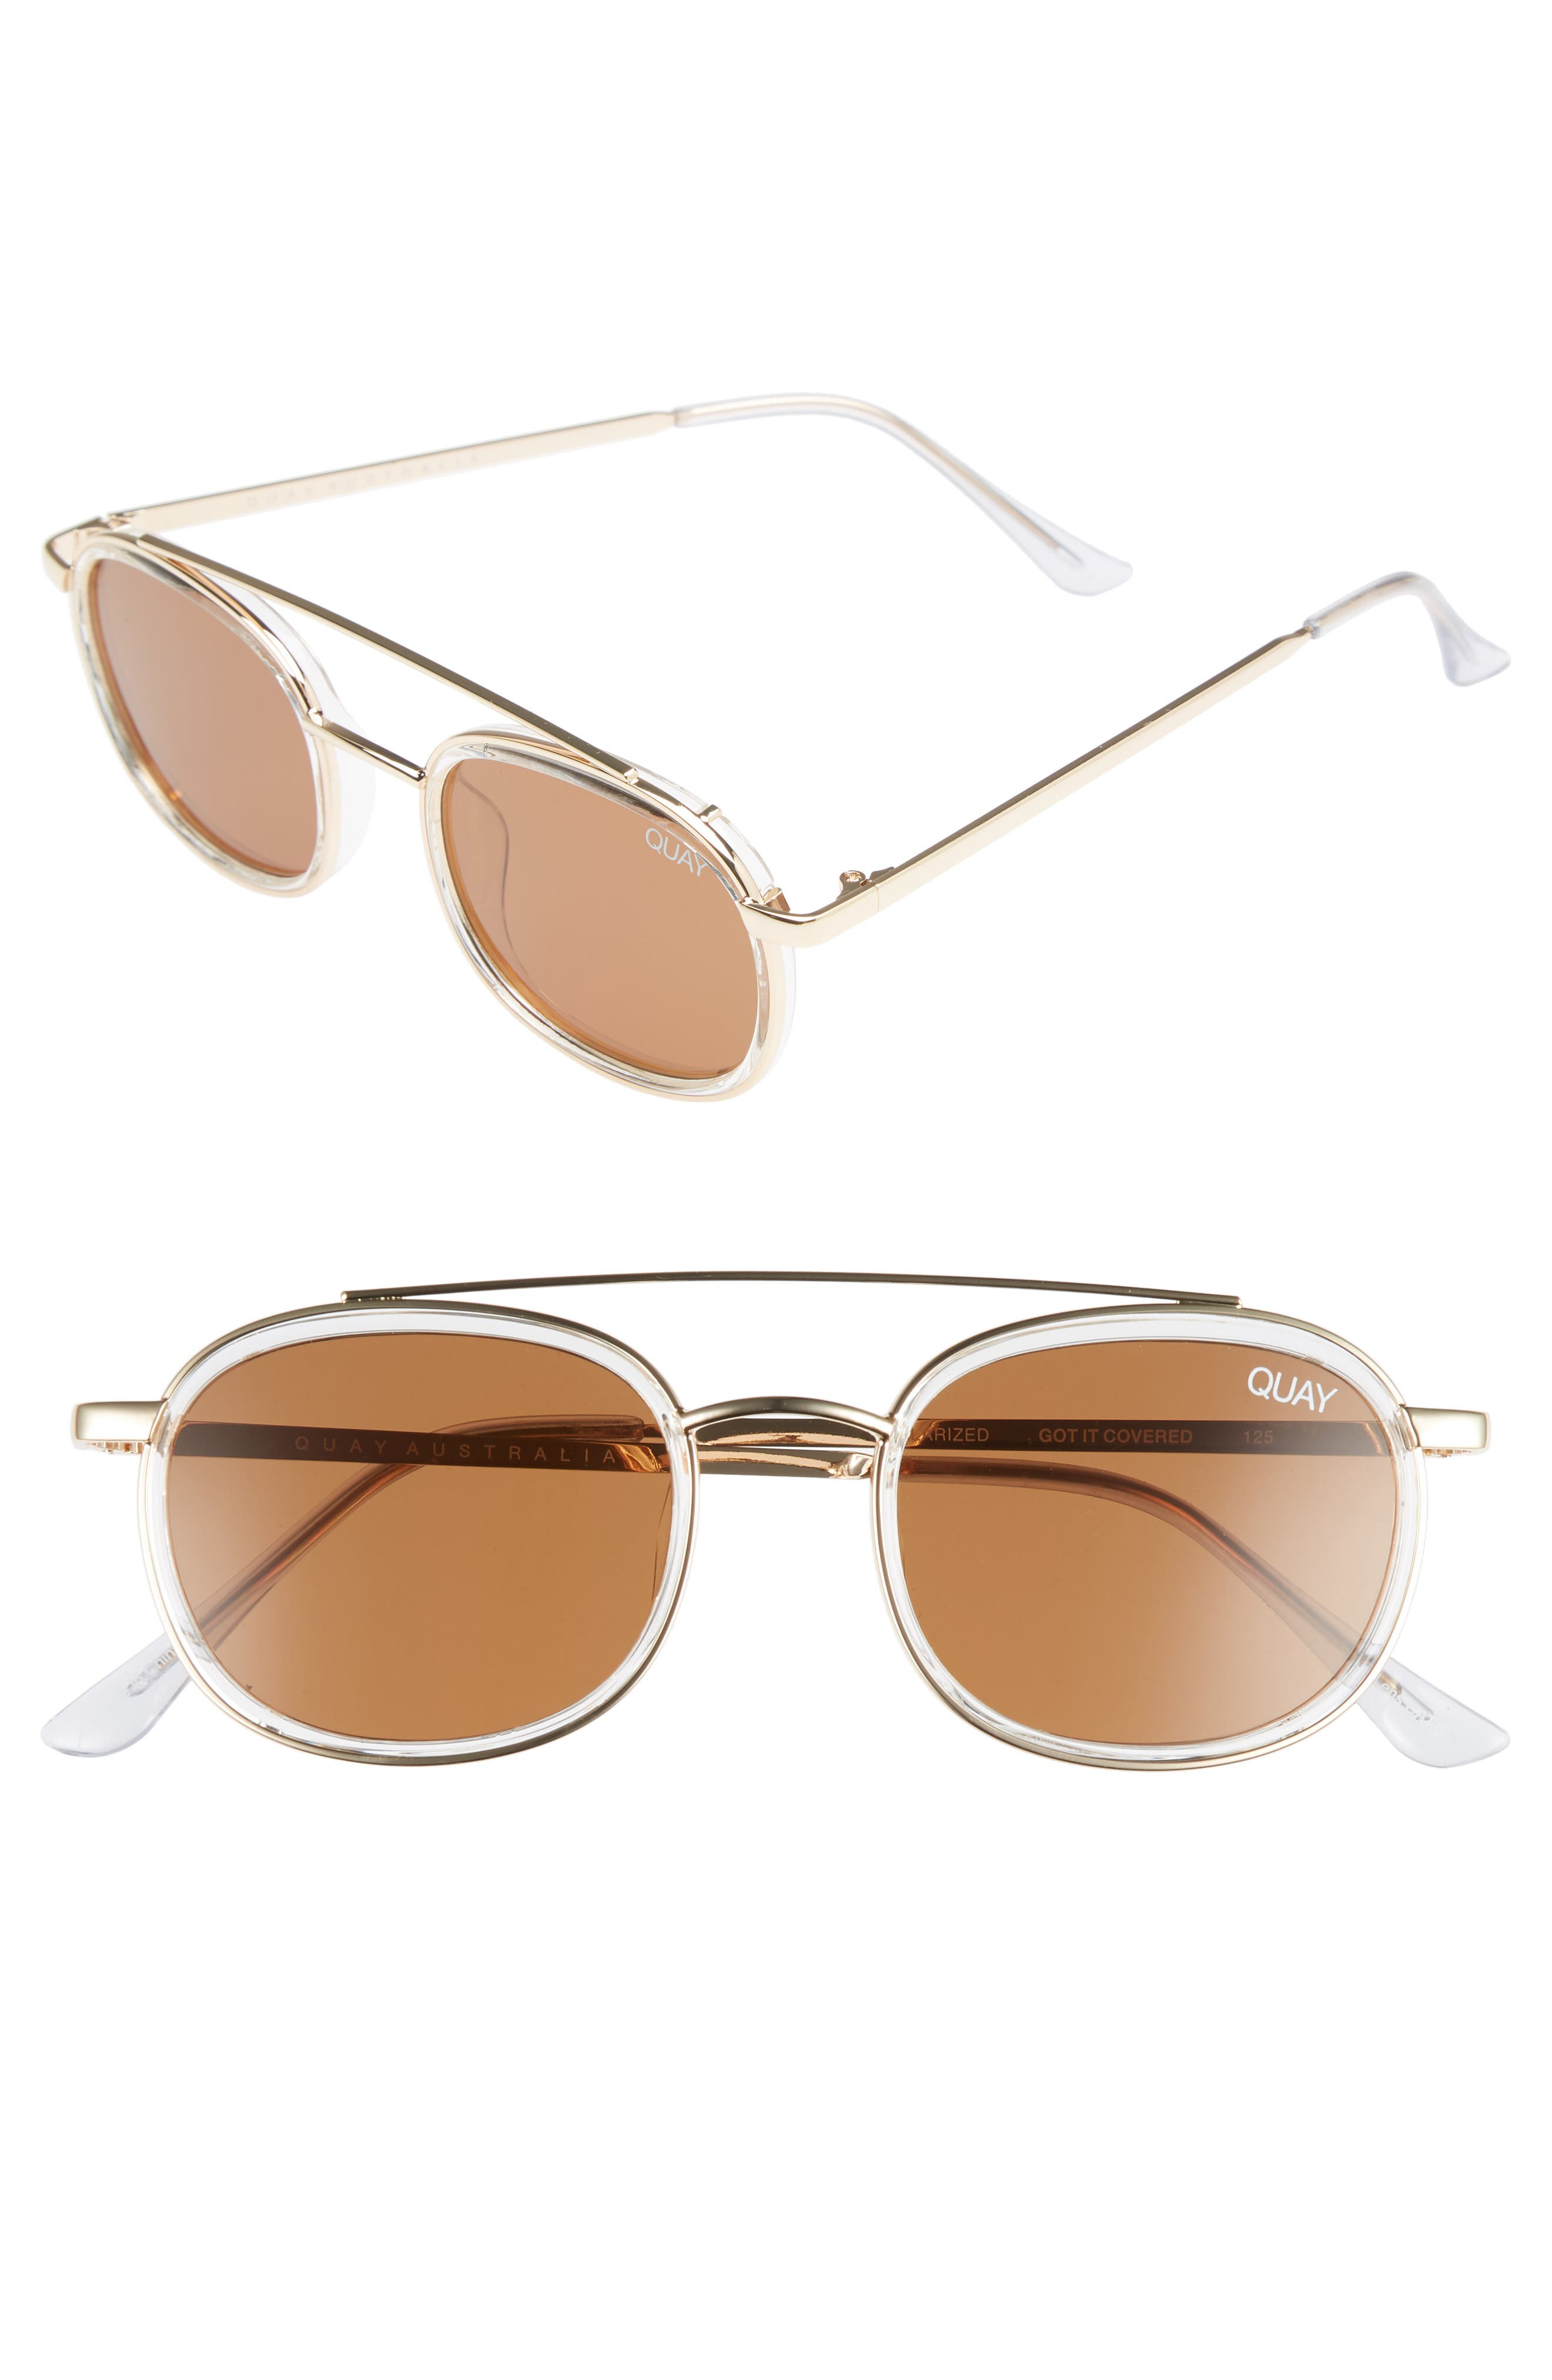 Quay Australia Got It Covered 50Mm Polarized Sunglasses - Clear / Brown Lens